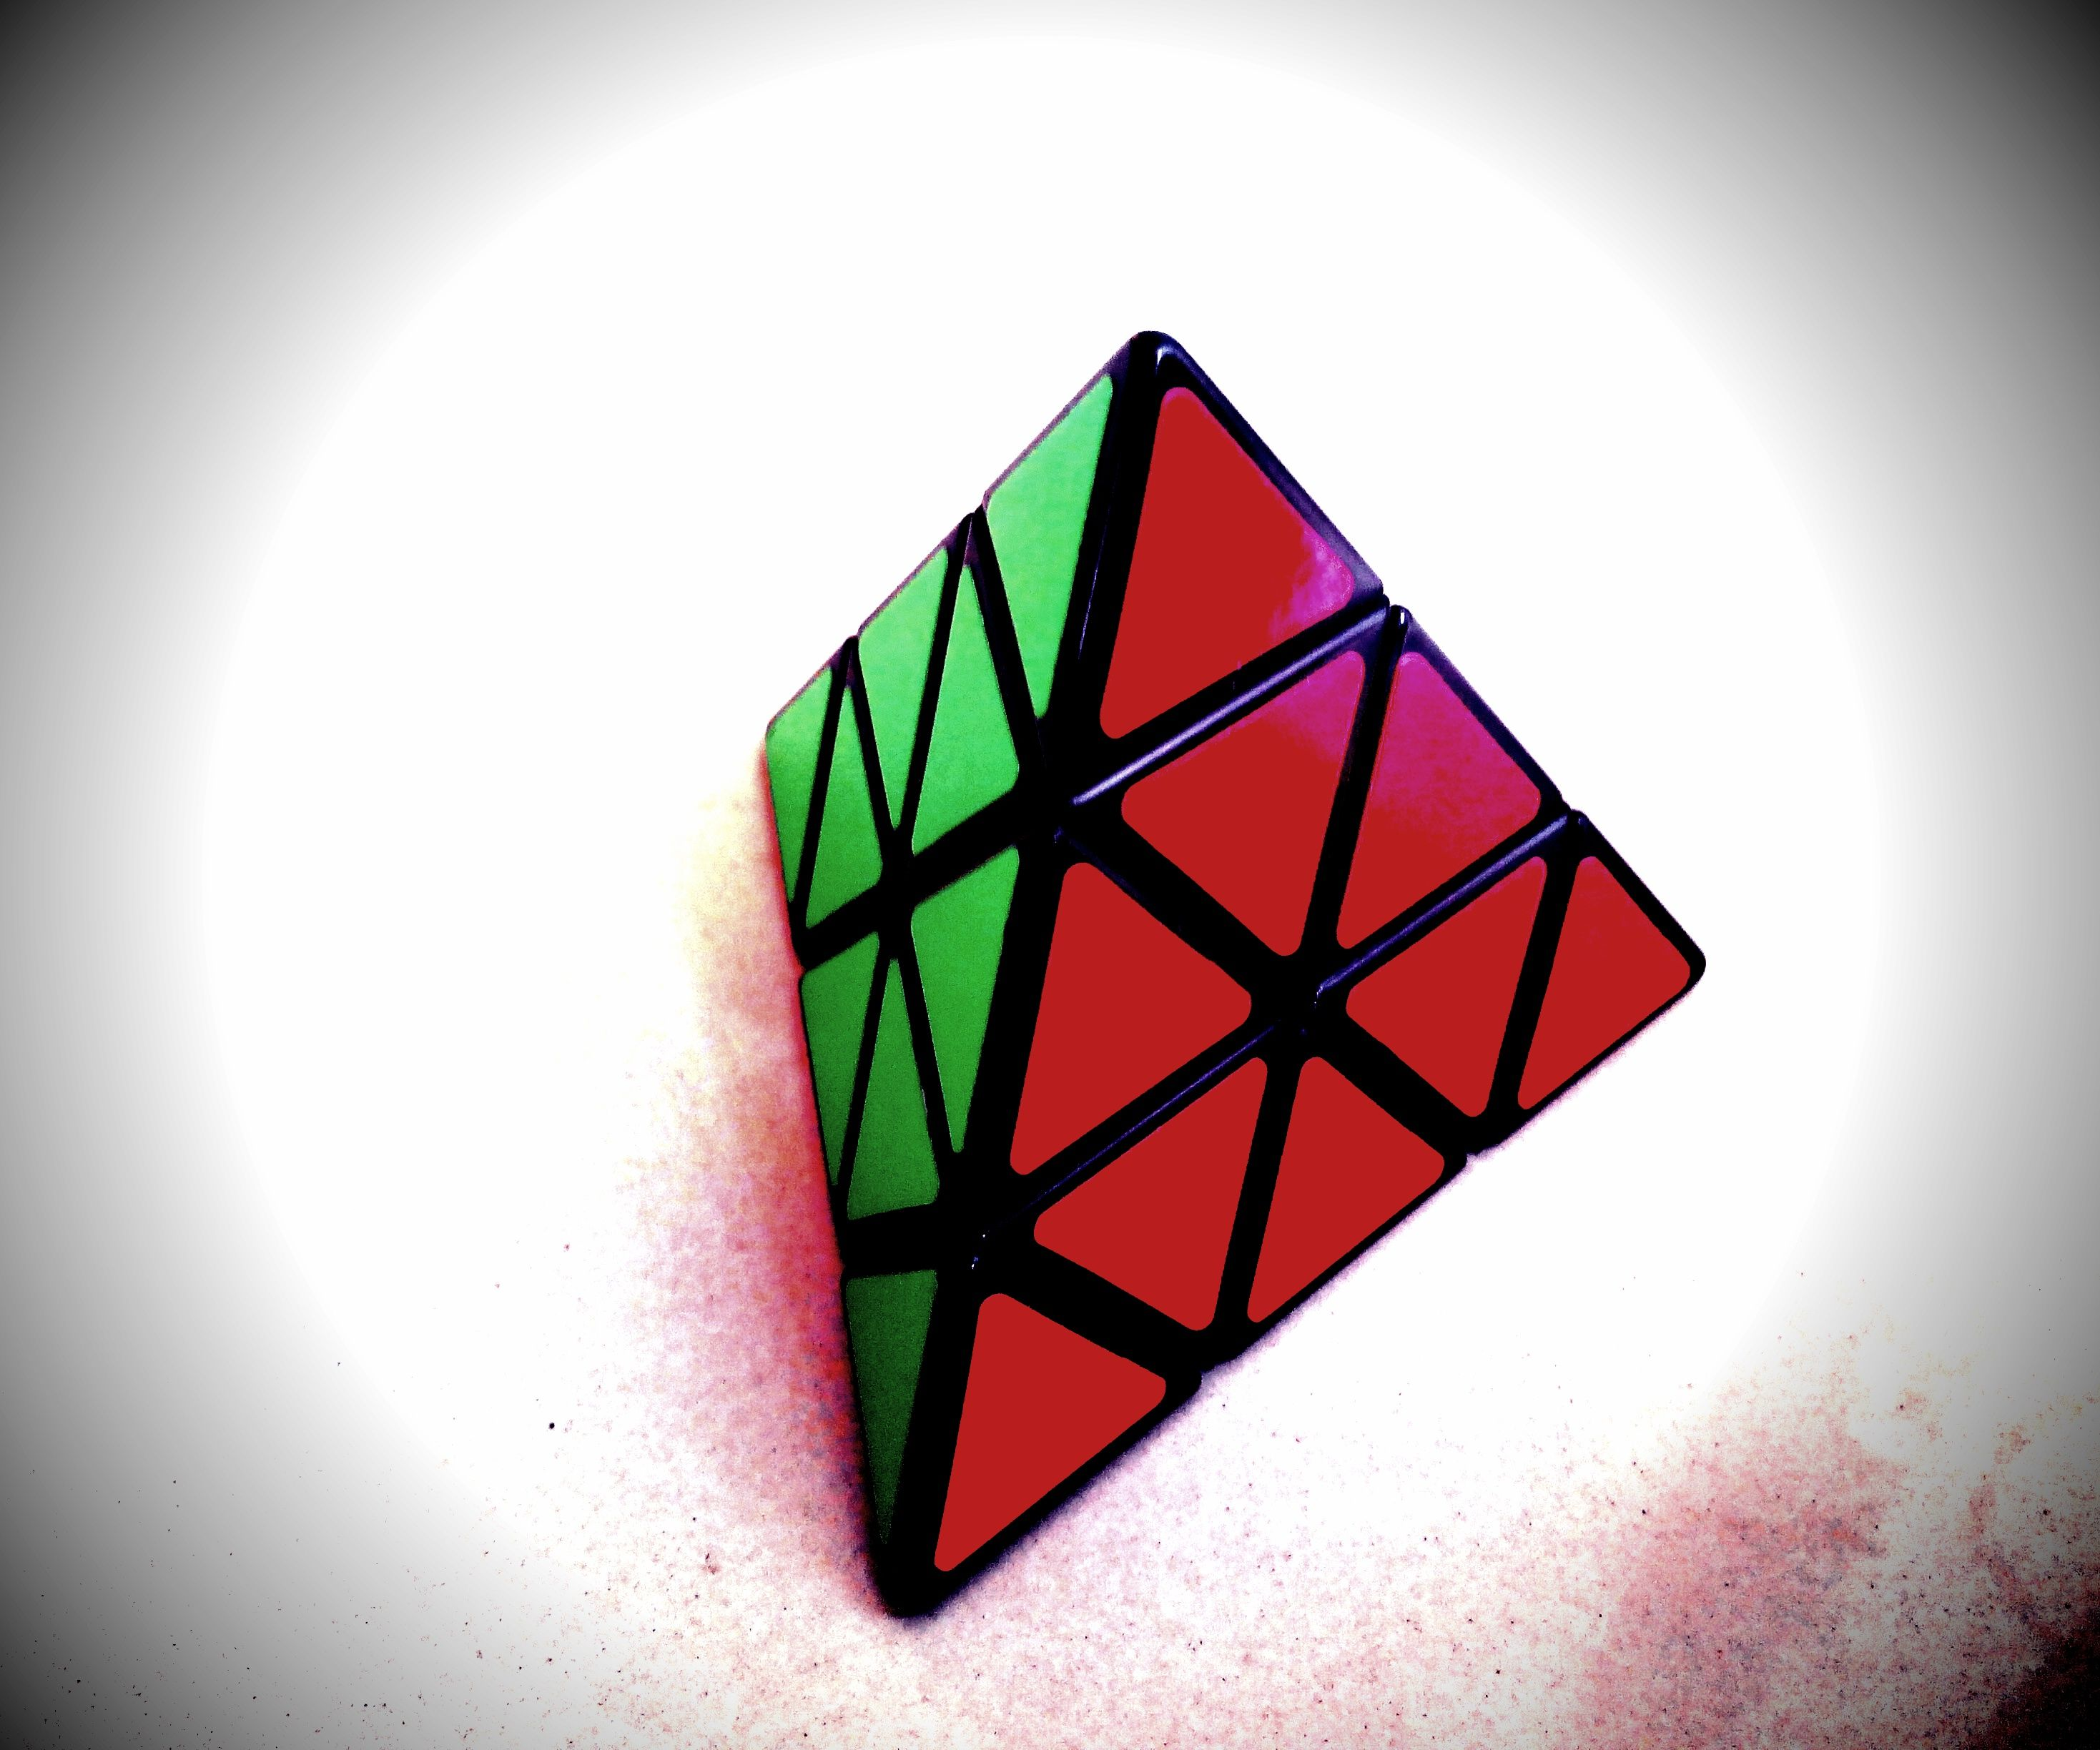 Solving The Pyraminx (Faster and Simpler)